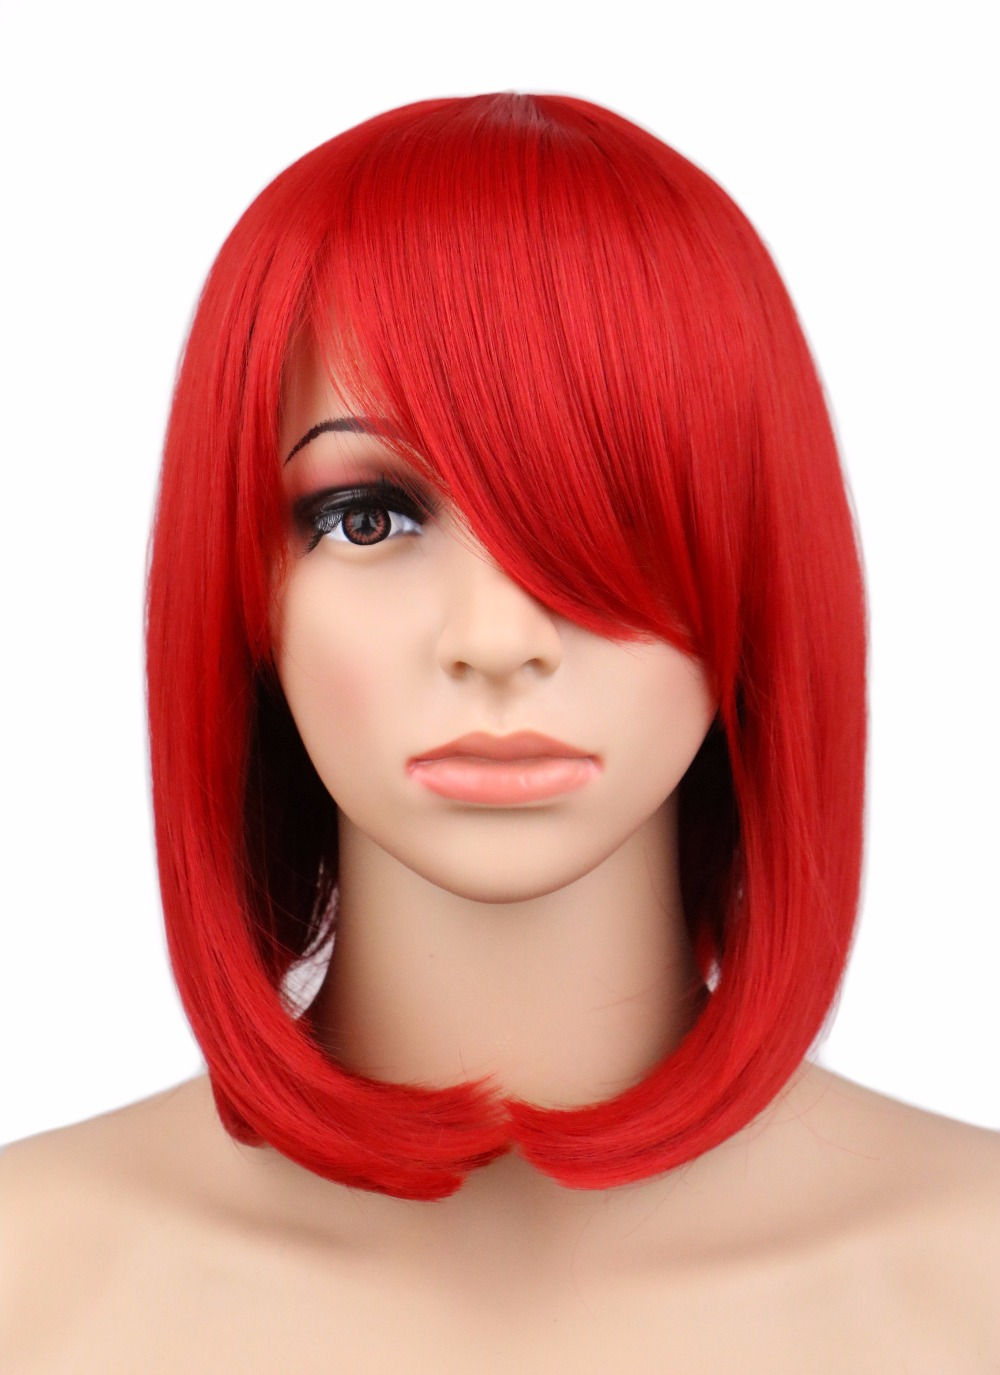 QQXCAIW Court Bob Droite Cosplay Perruque Costume Party Rouge 40 Cm Synthétique Cheveux Perruques